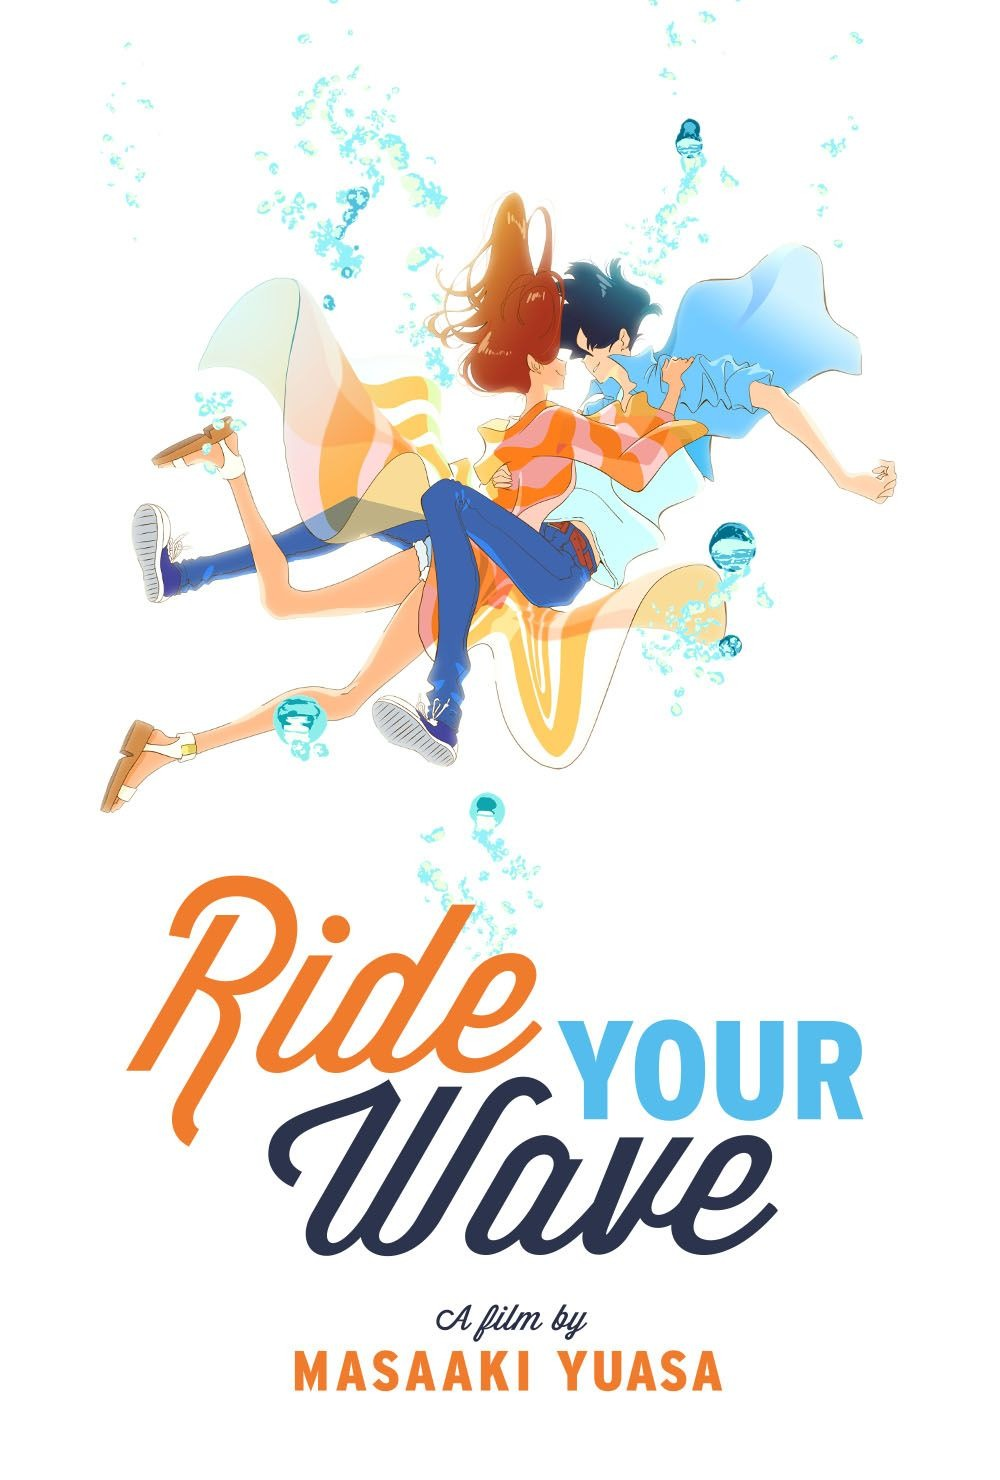 ride your wave 2 6ce0f5f5bd3bed05bdc5187b28f95989